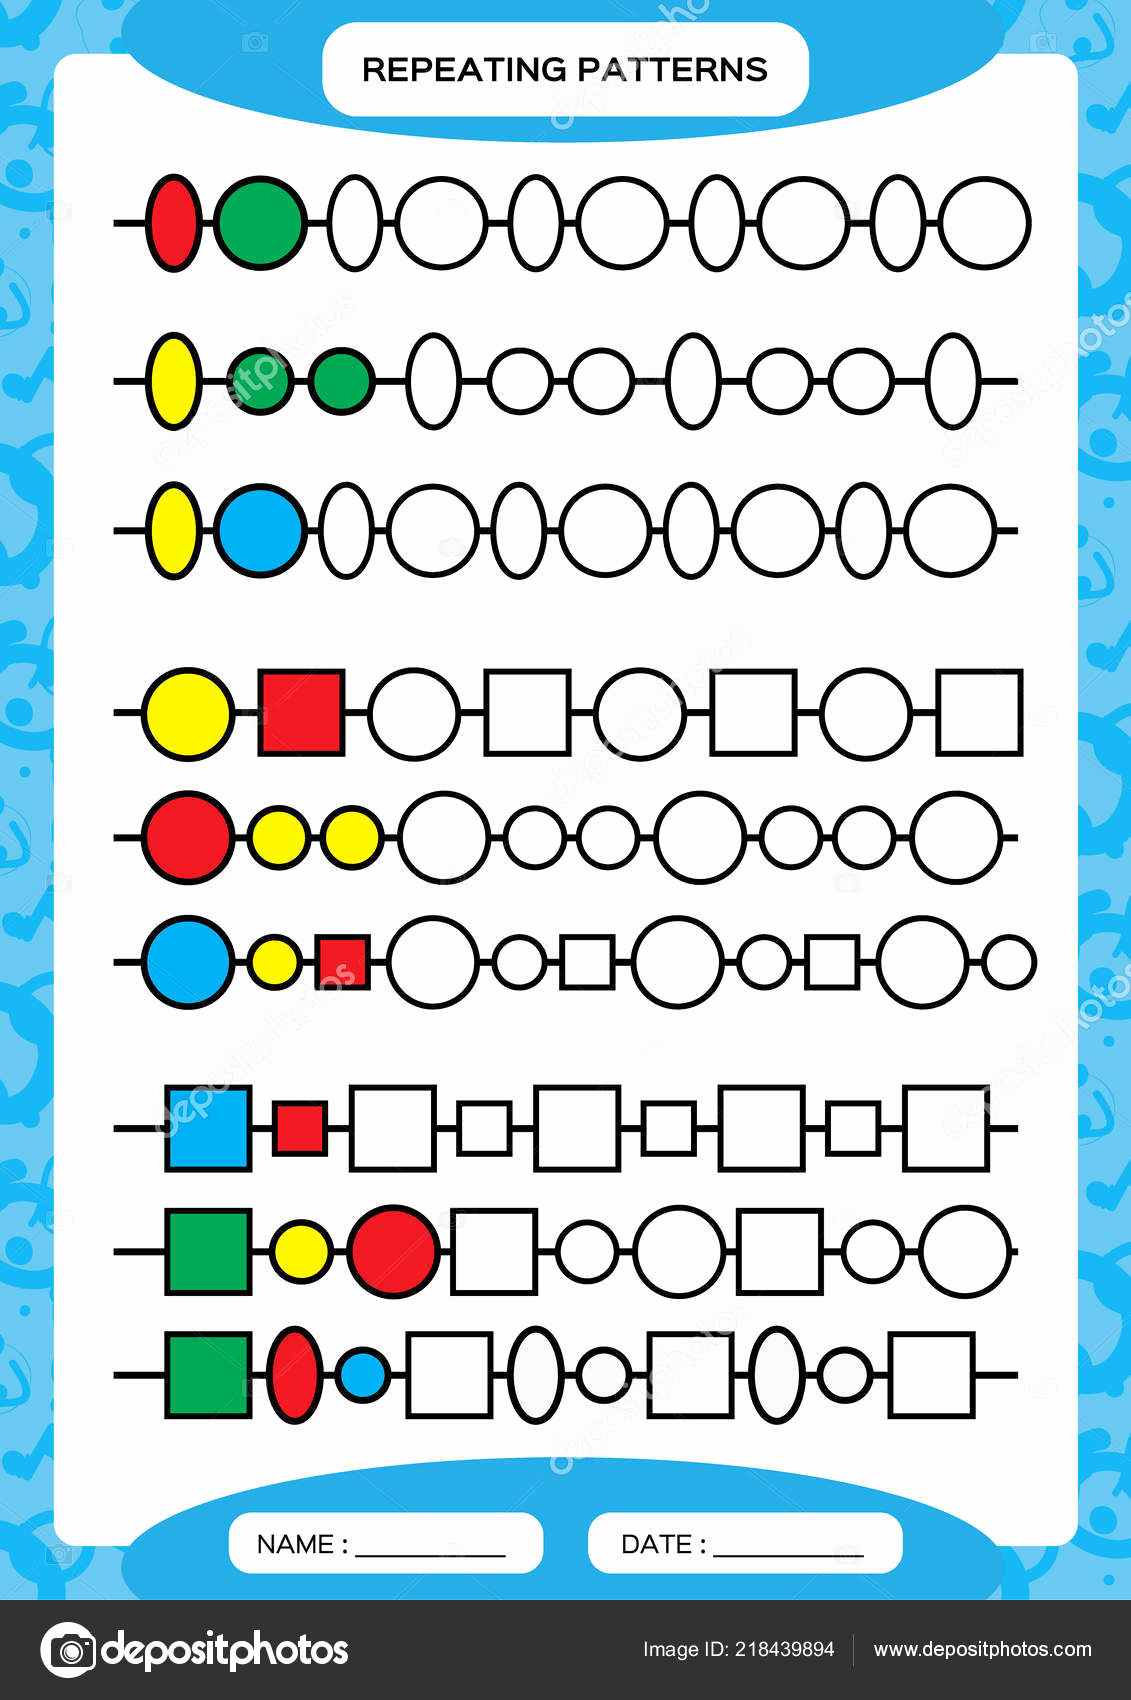 Repeated Pattern Worksheets Lovely Repeating Patterns Worksheet